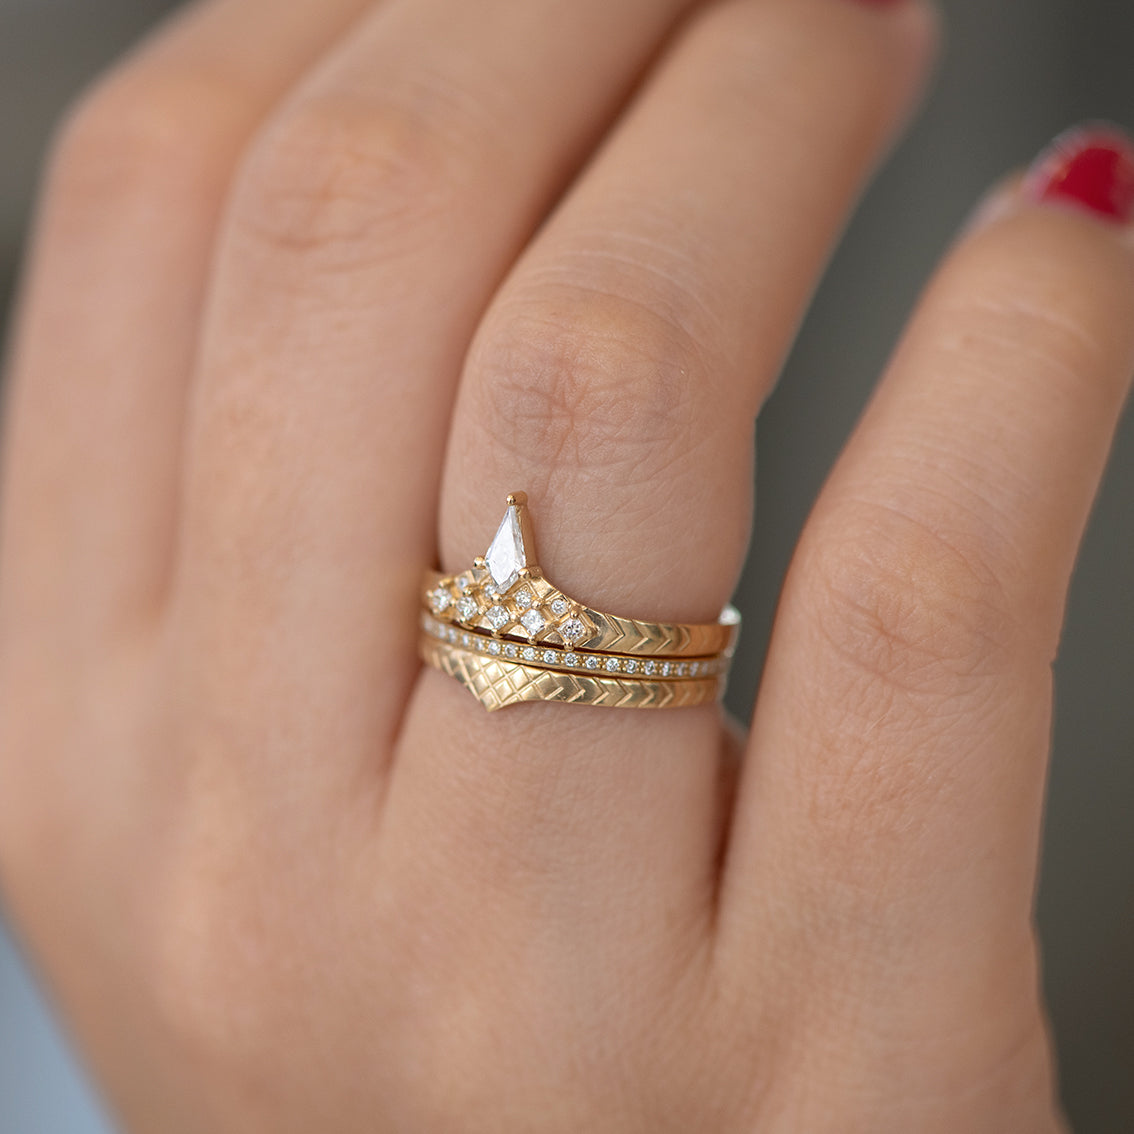 Geometric band with diamond peak on finger